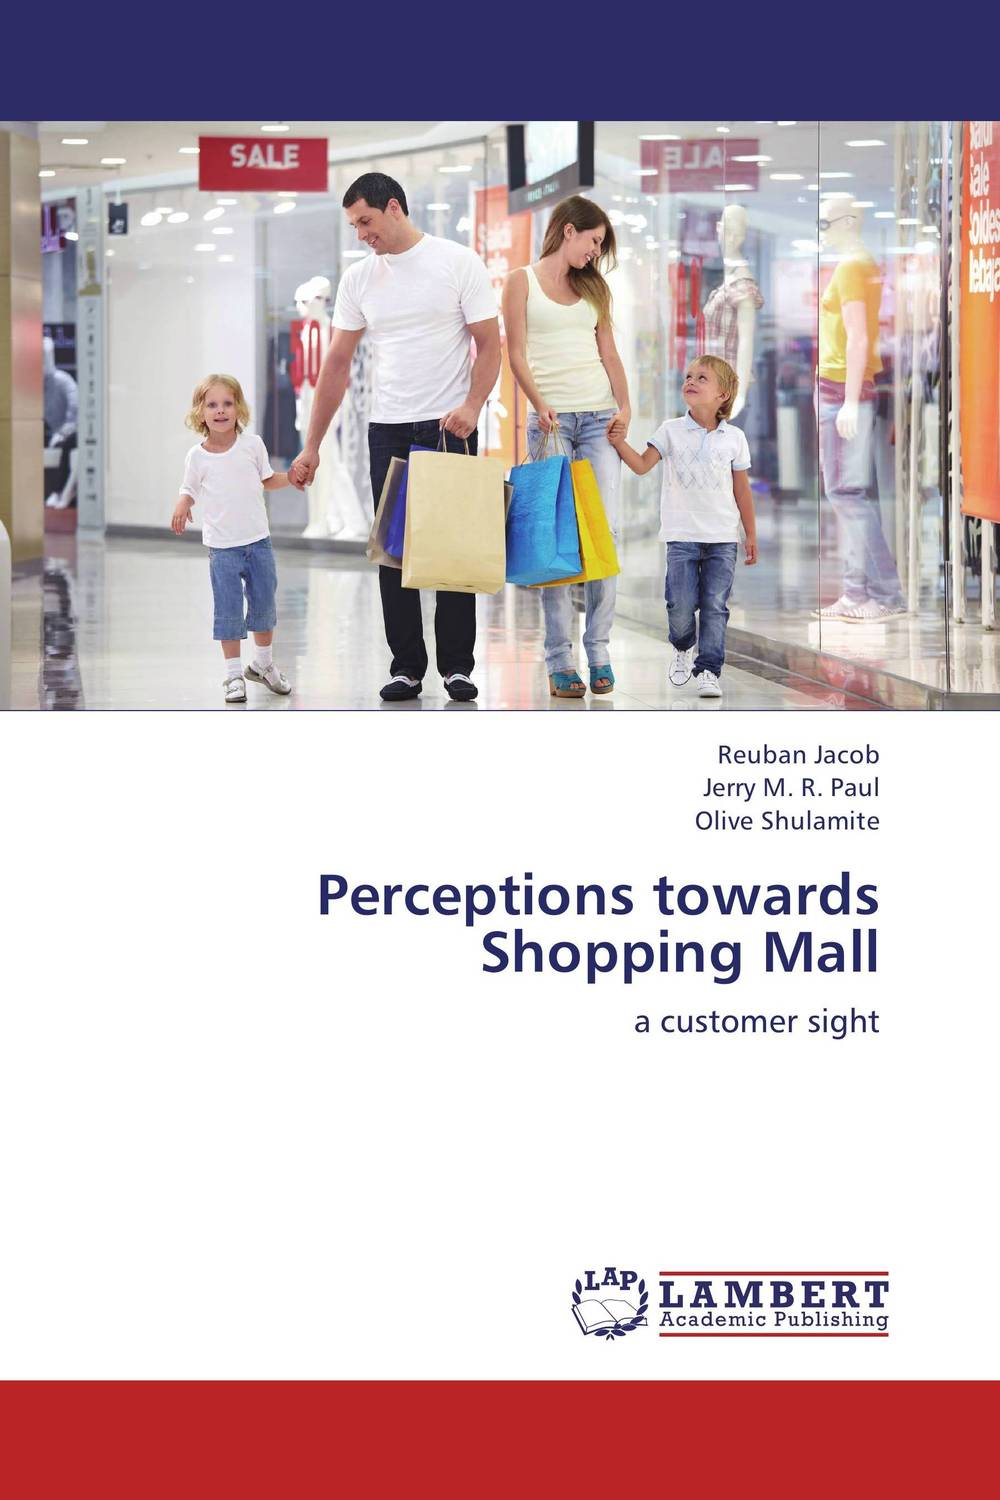 Perceptions towards Shopping Mall business feasibility the discrepances between perceptions and practice